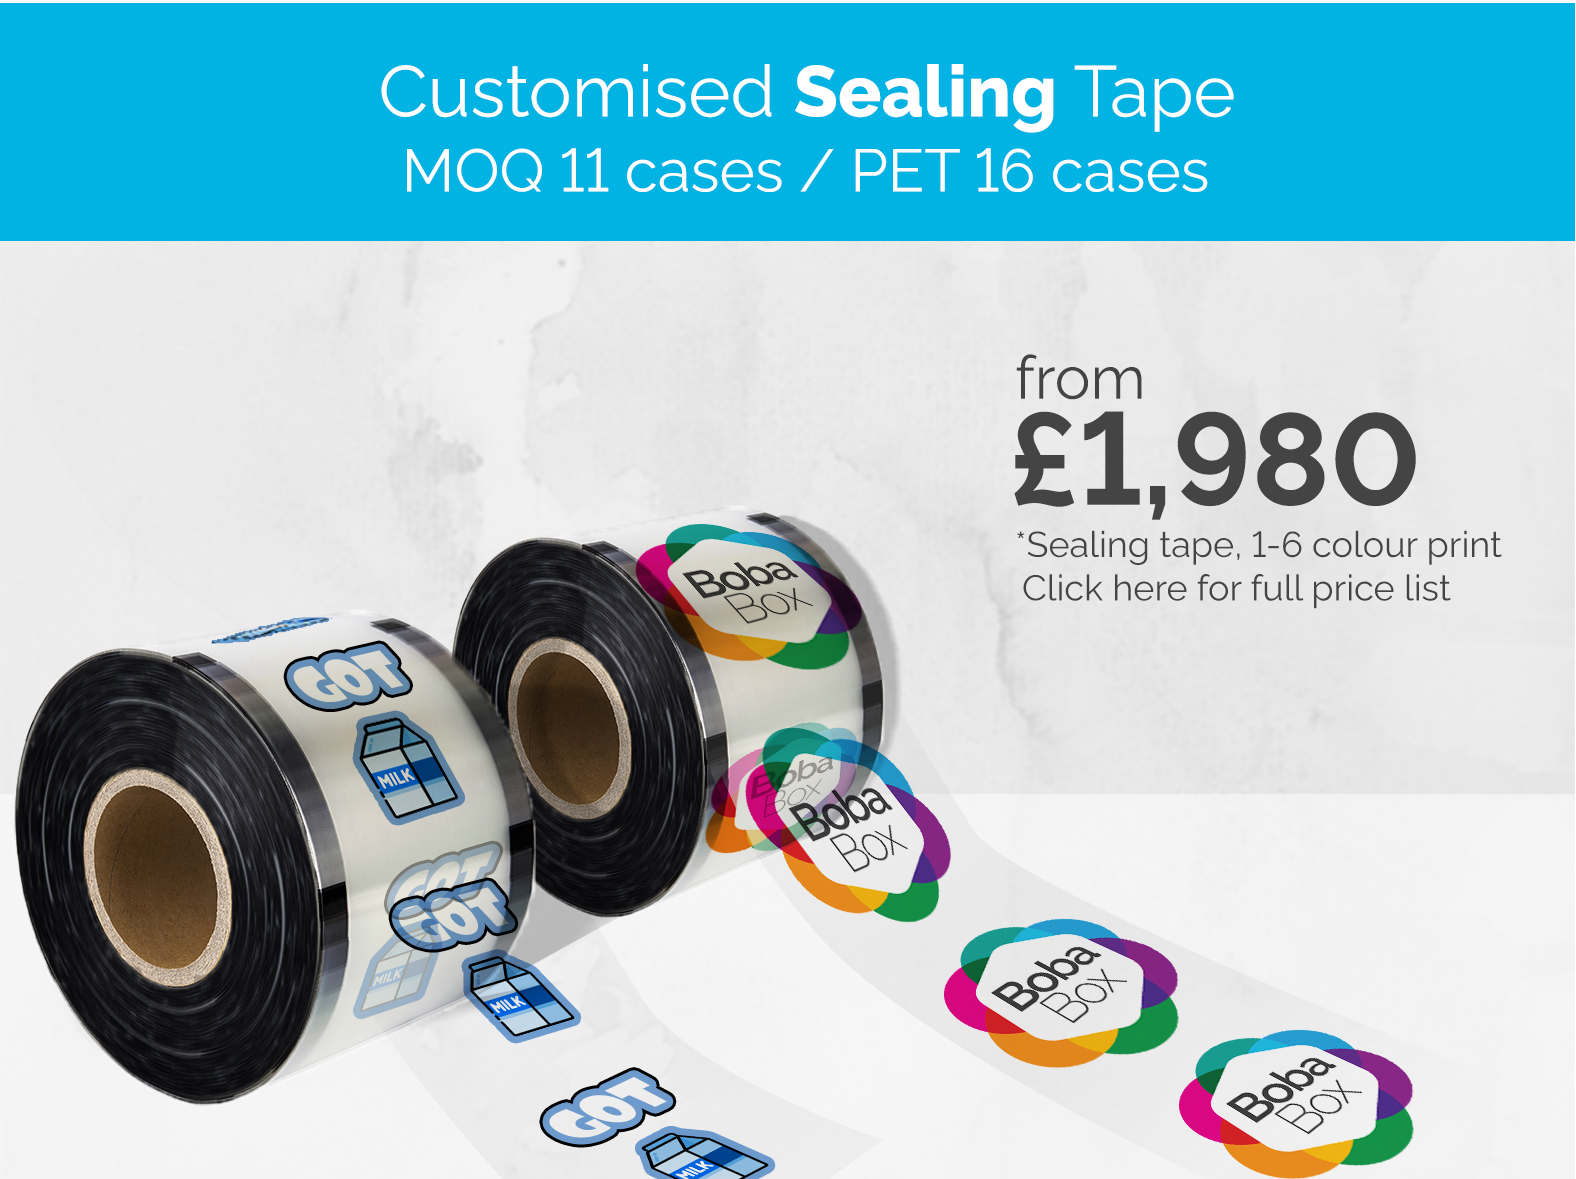 Sealing tape blog price list_1.jpg